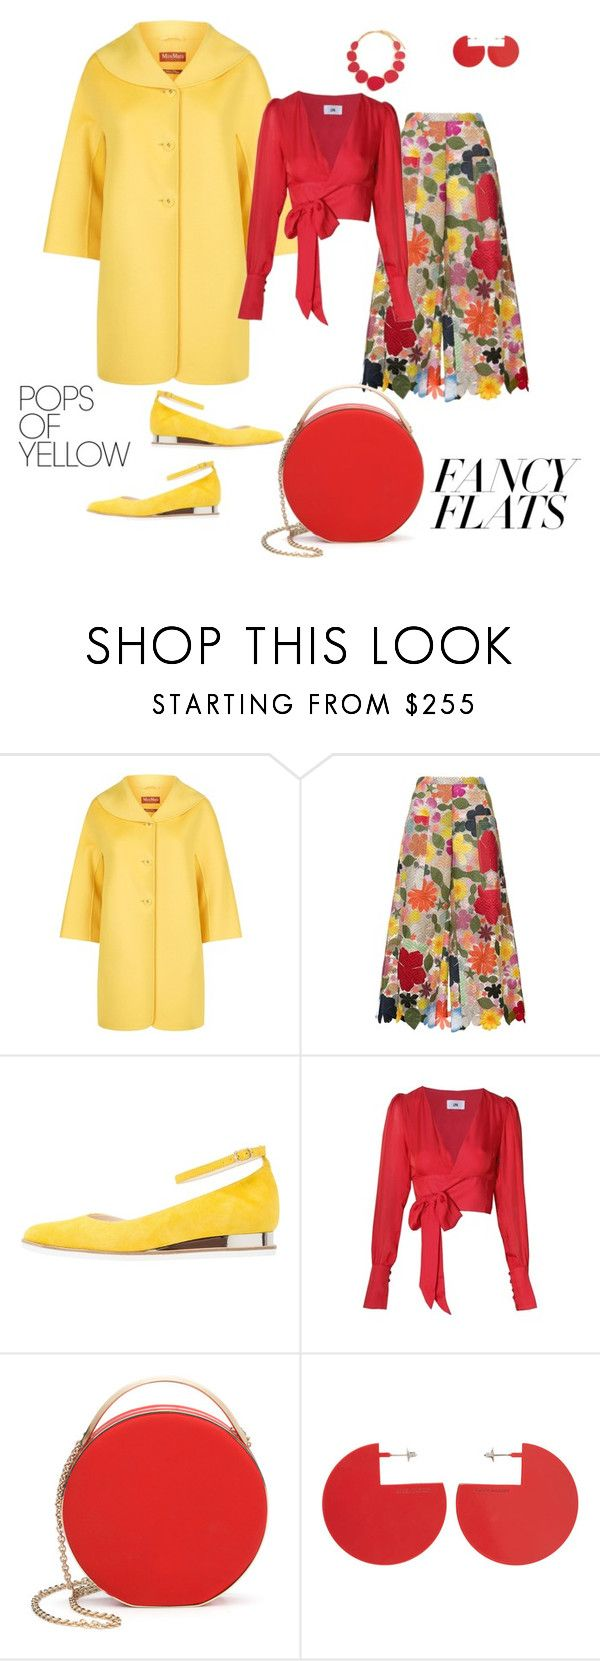 """# fancy flats# pops of yellow"" by andrea-jones-4 ❤ liked on Polyvore featuring MaxMara, Rosie Assoulin, Zign, LPA, 3.1 Phillip Lim, Isabel Marant, Kenneth Jay Lane, PopsOfYellow and NYFWYellow"